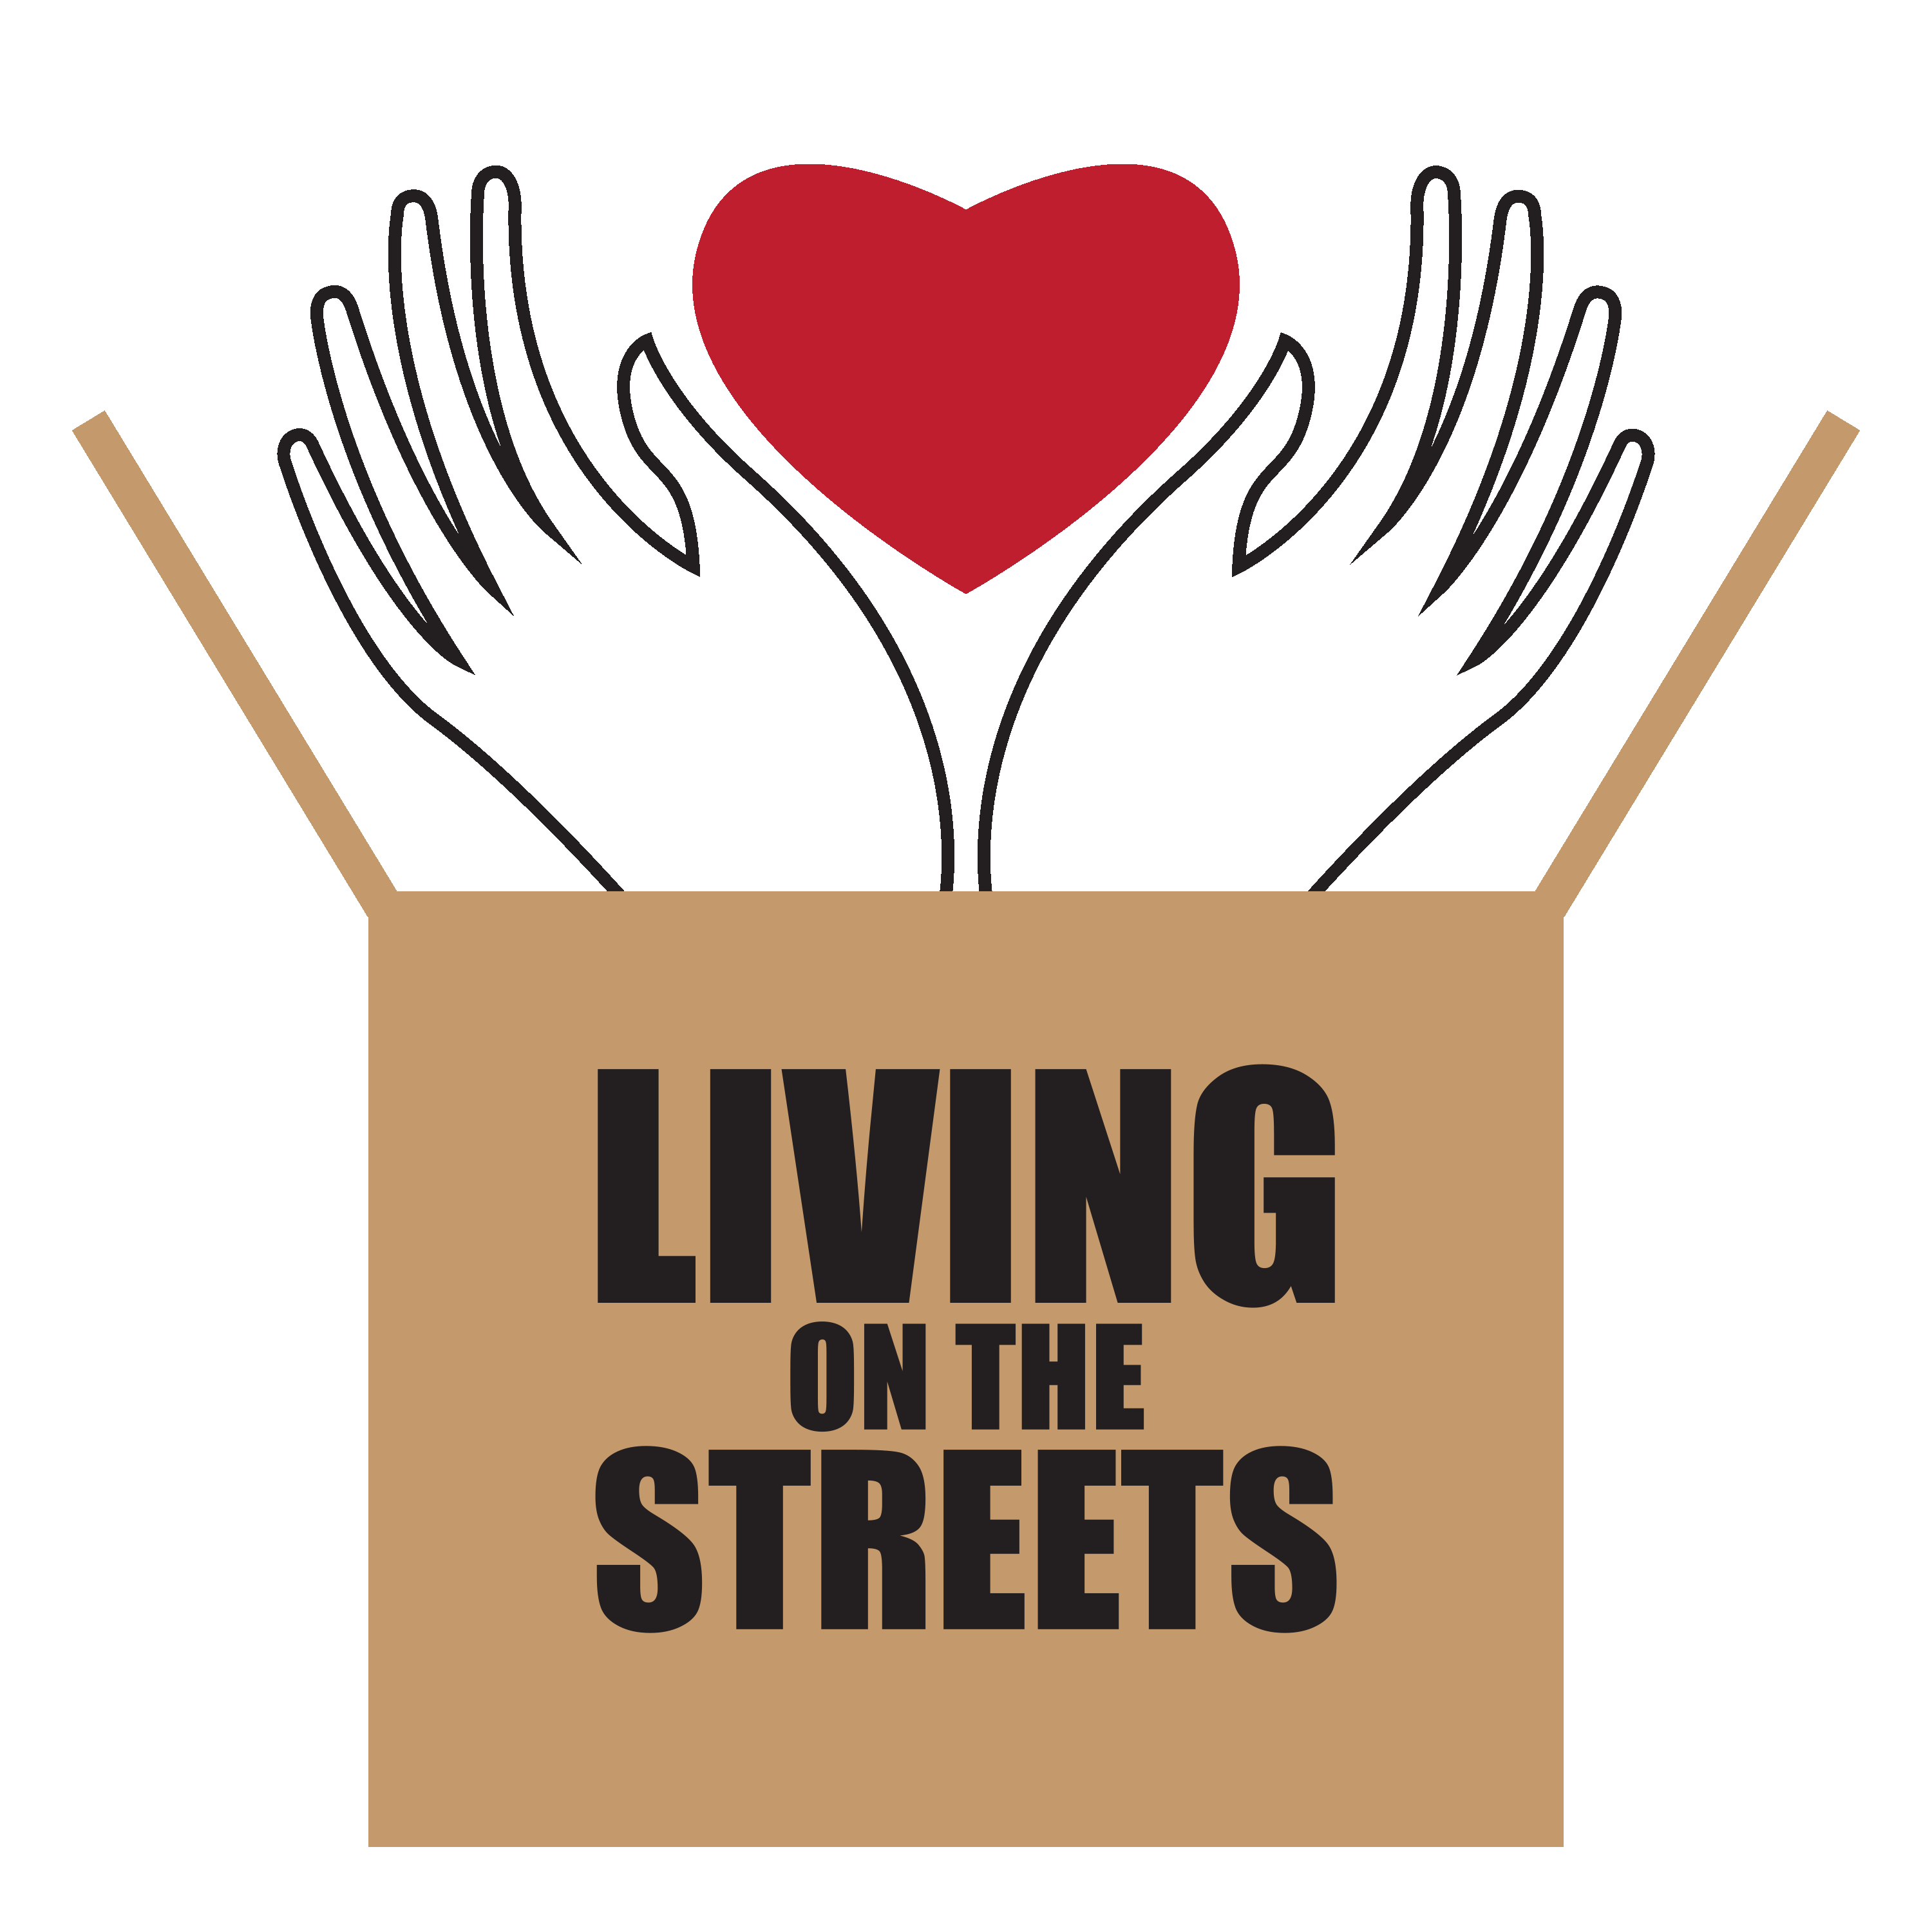 Living on the Streets Helping Hands Pantry